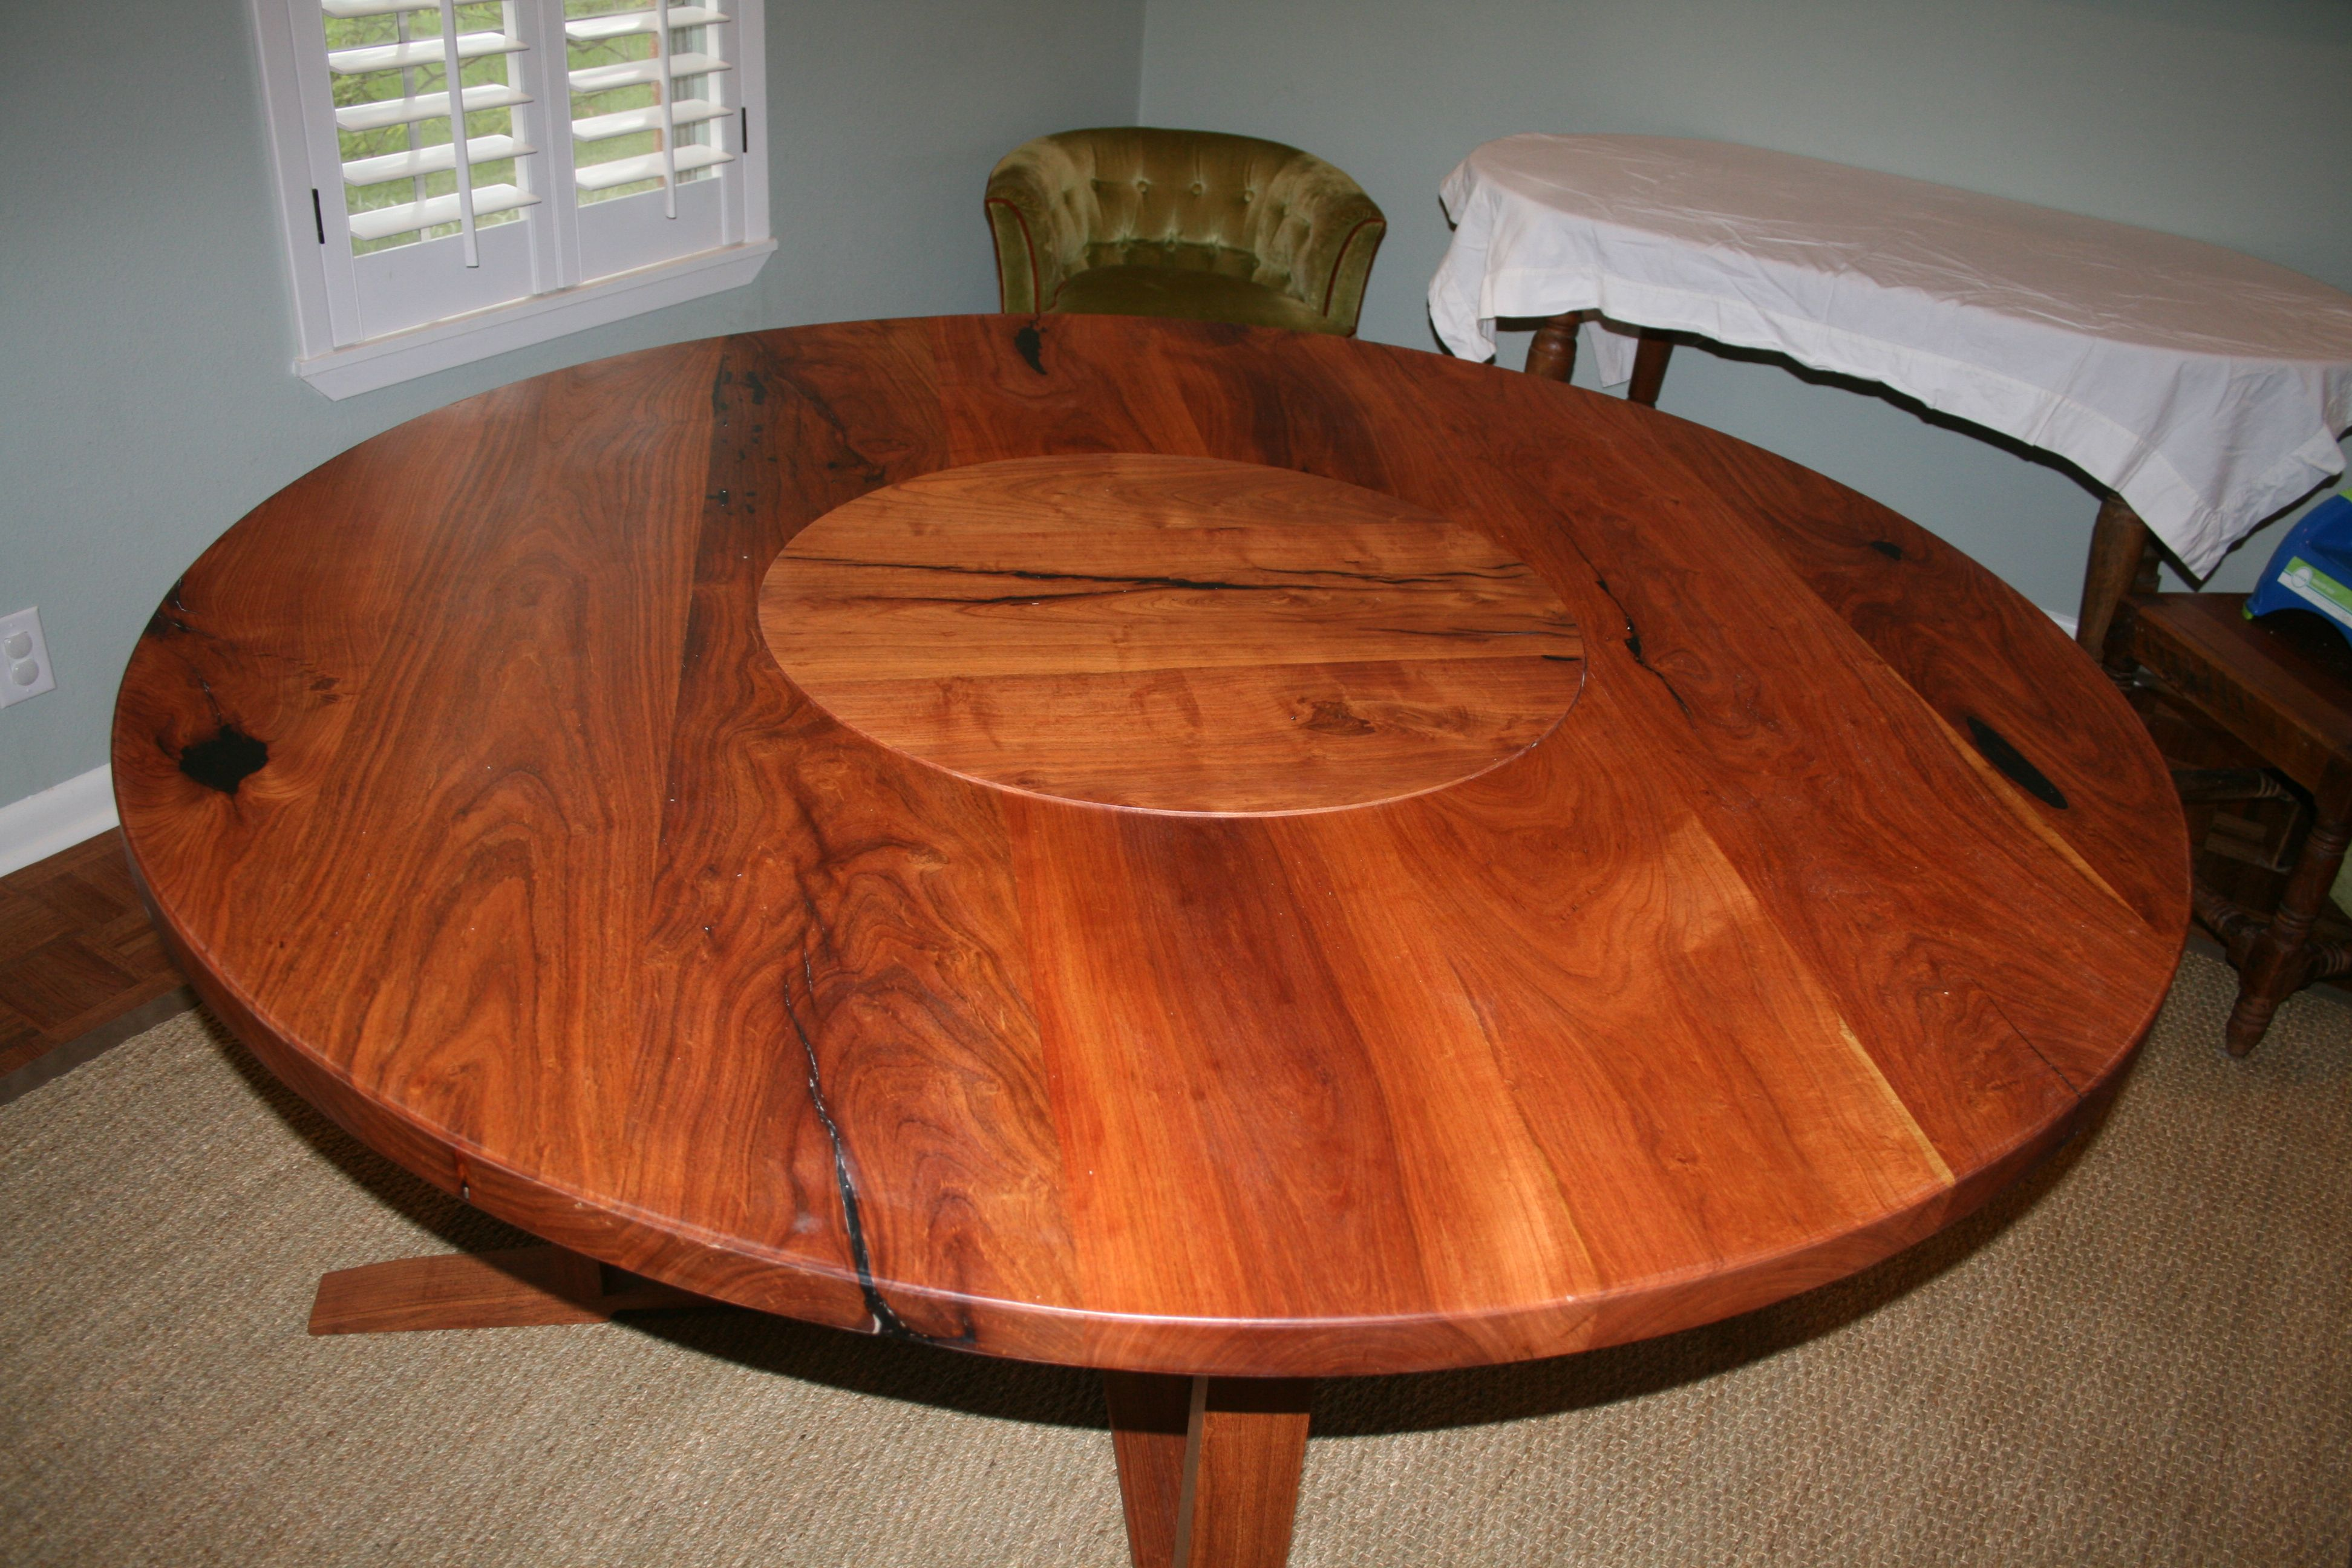 Solid Texas Mesquite Table With Embedded Lazy Susan This Is One Way To Serve A